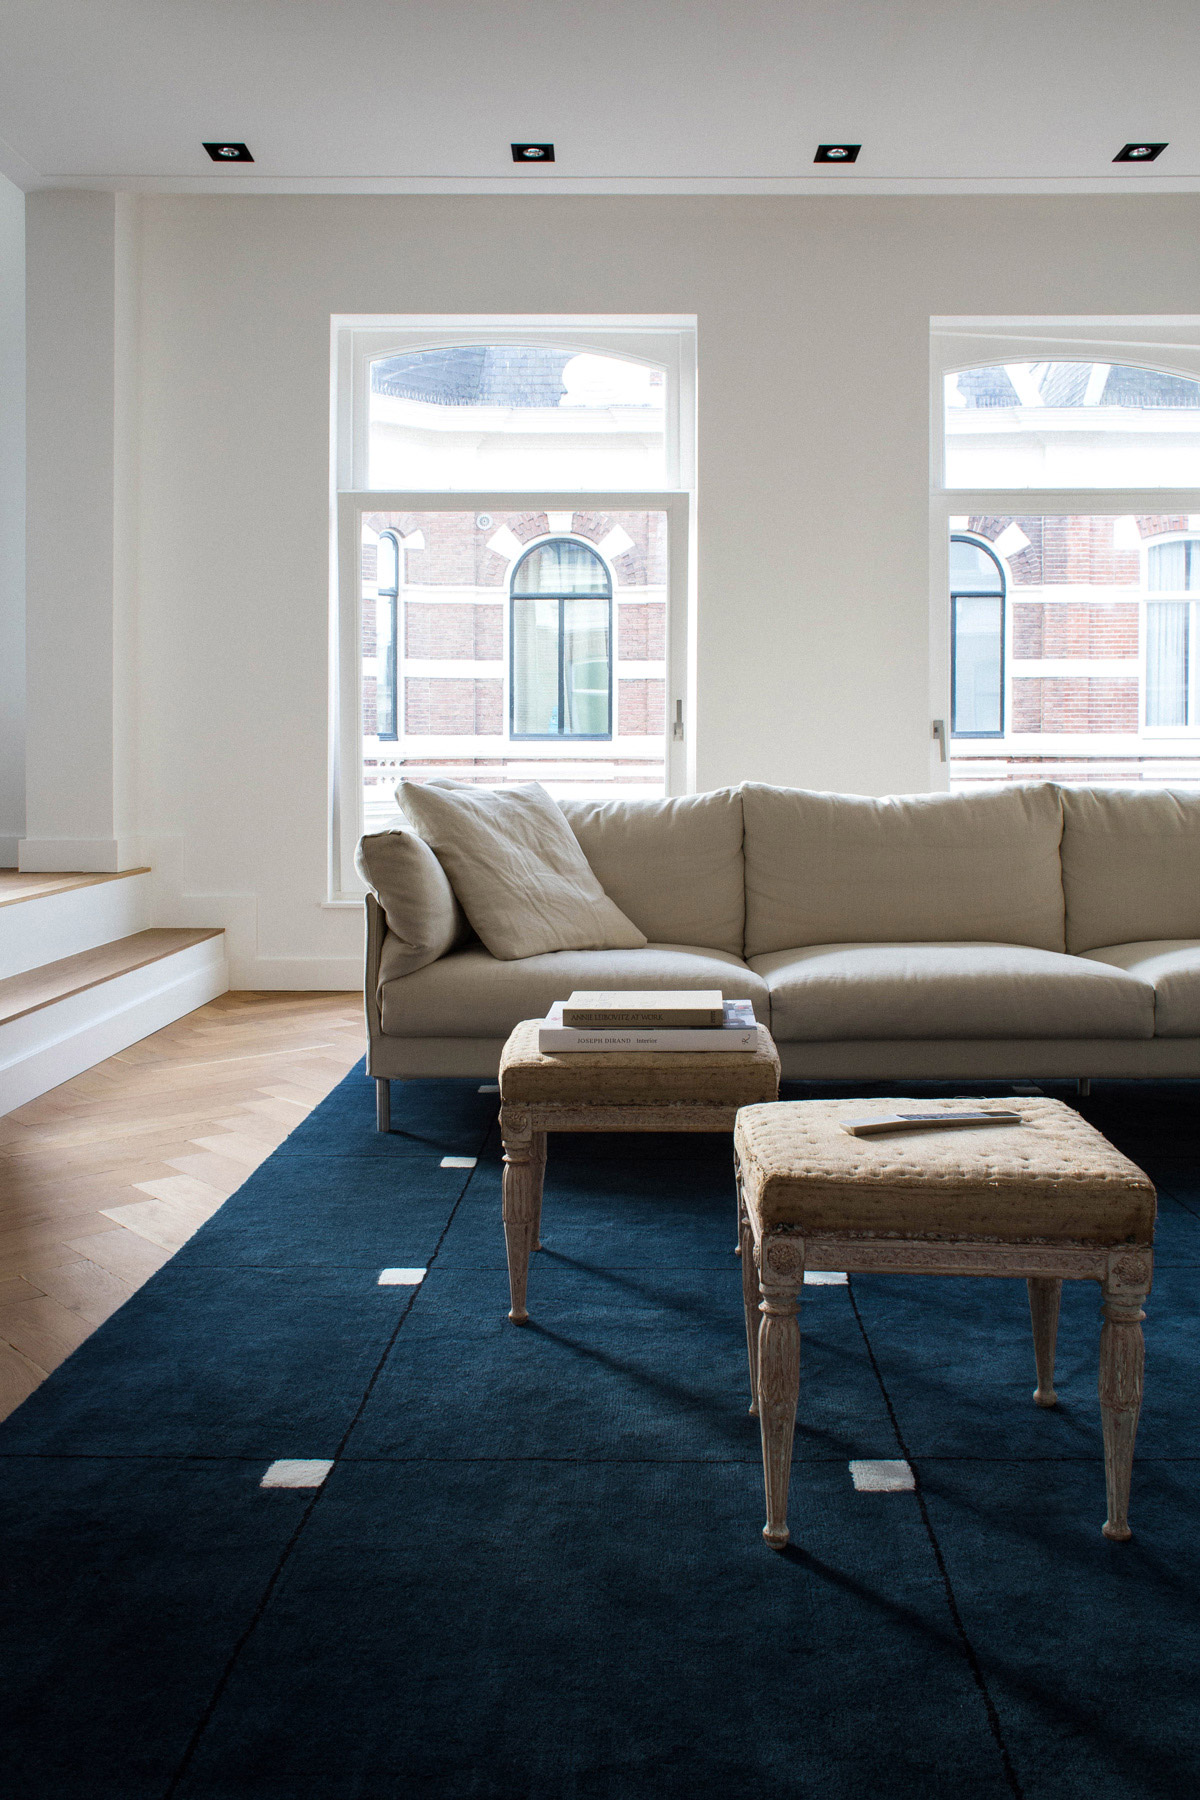 Plush rug Modern in Teal displayed in a bright, sunny living room decorated with a beige couch.